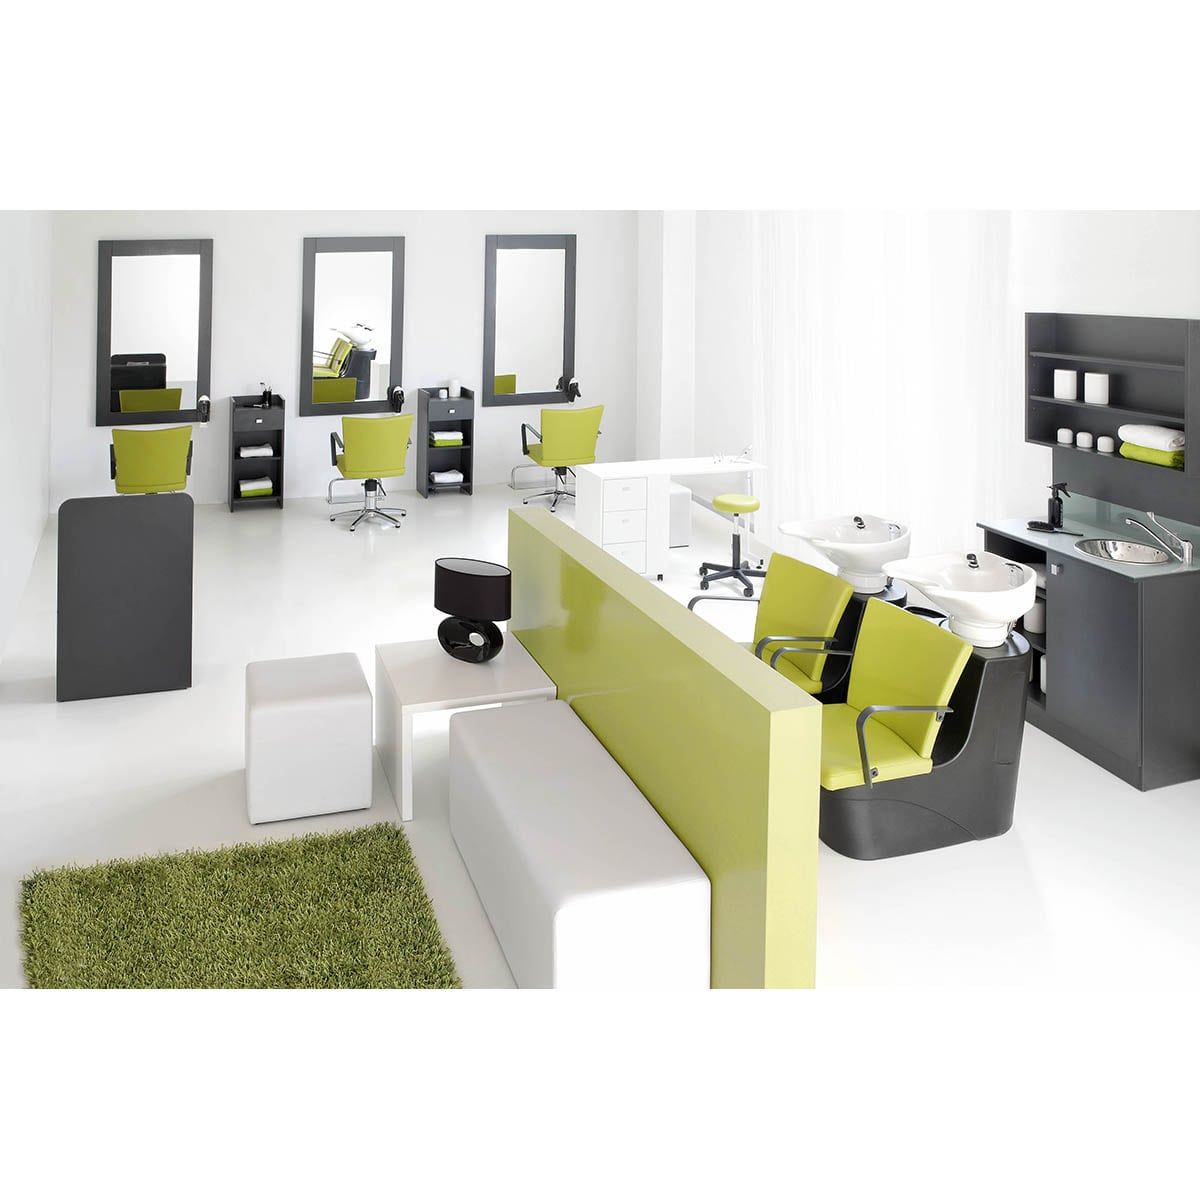 Les avantages d un mobilier de salon de coiffure design for Mobilier salon design